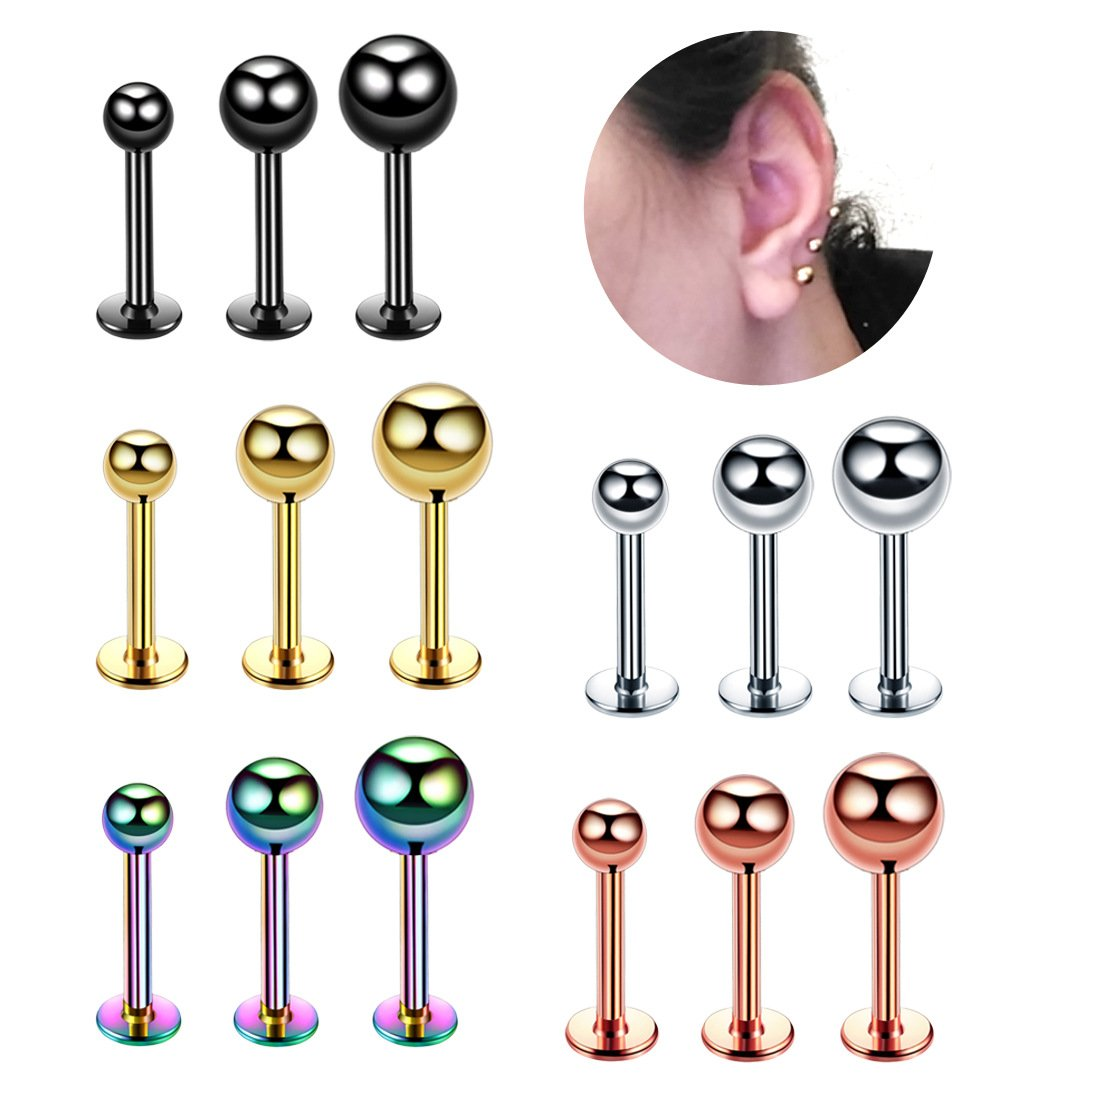 Stainless Steel Standard Threaded Labret (Color/Size Varies)